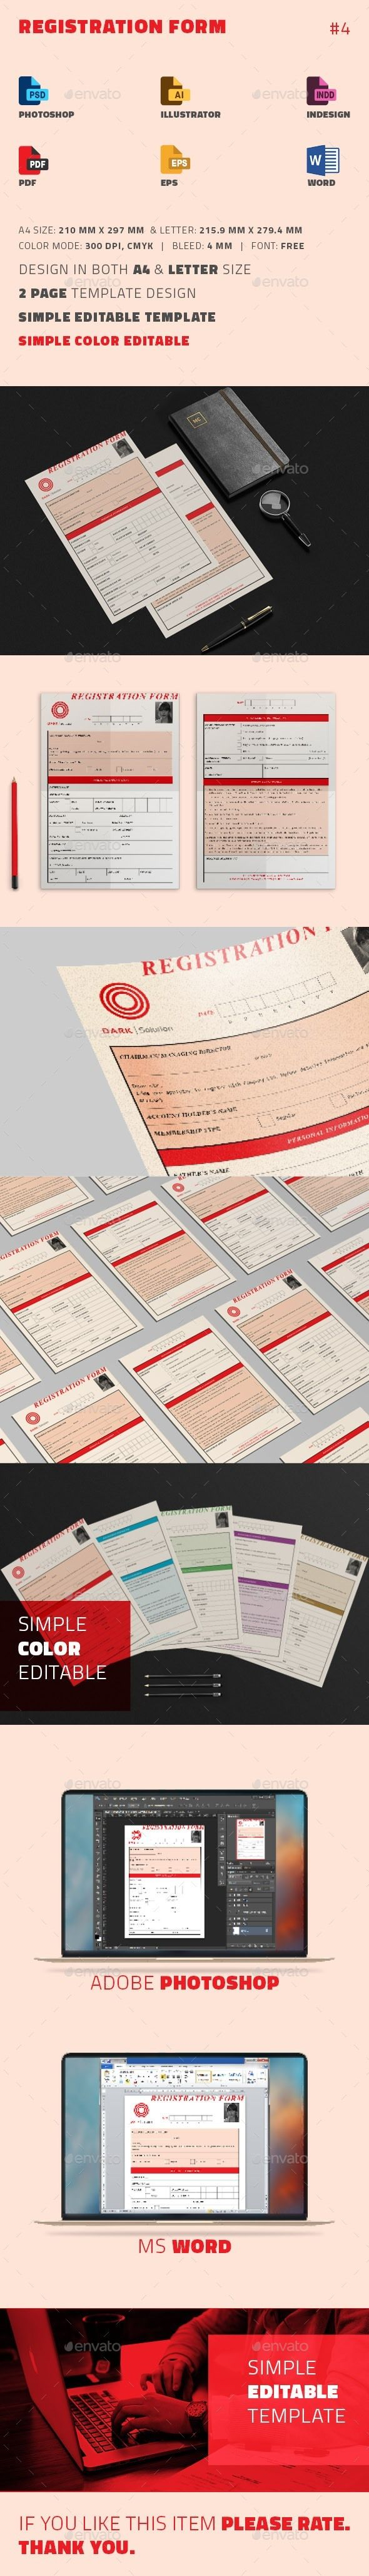 Registration Form Miscellaneous Print Templates Download